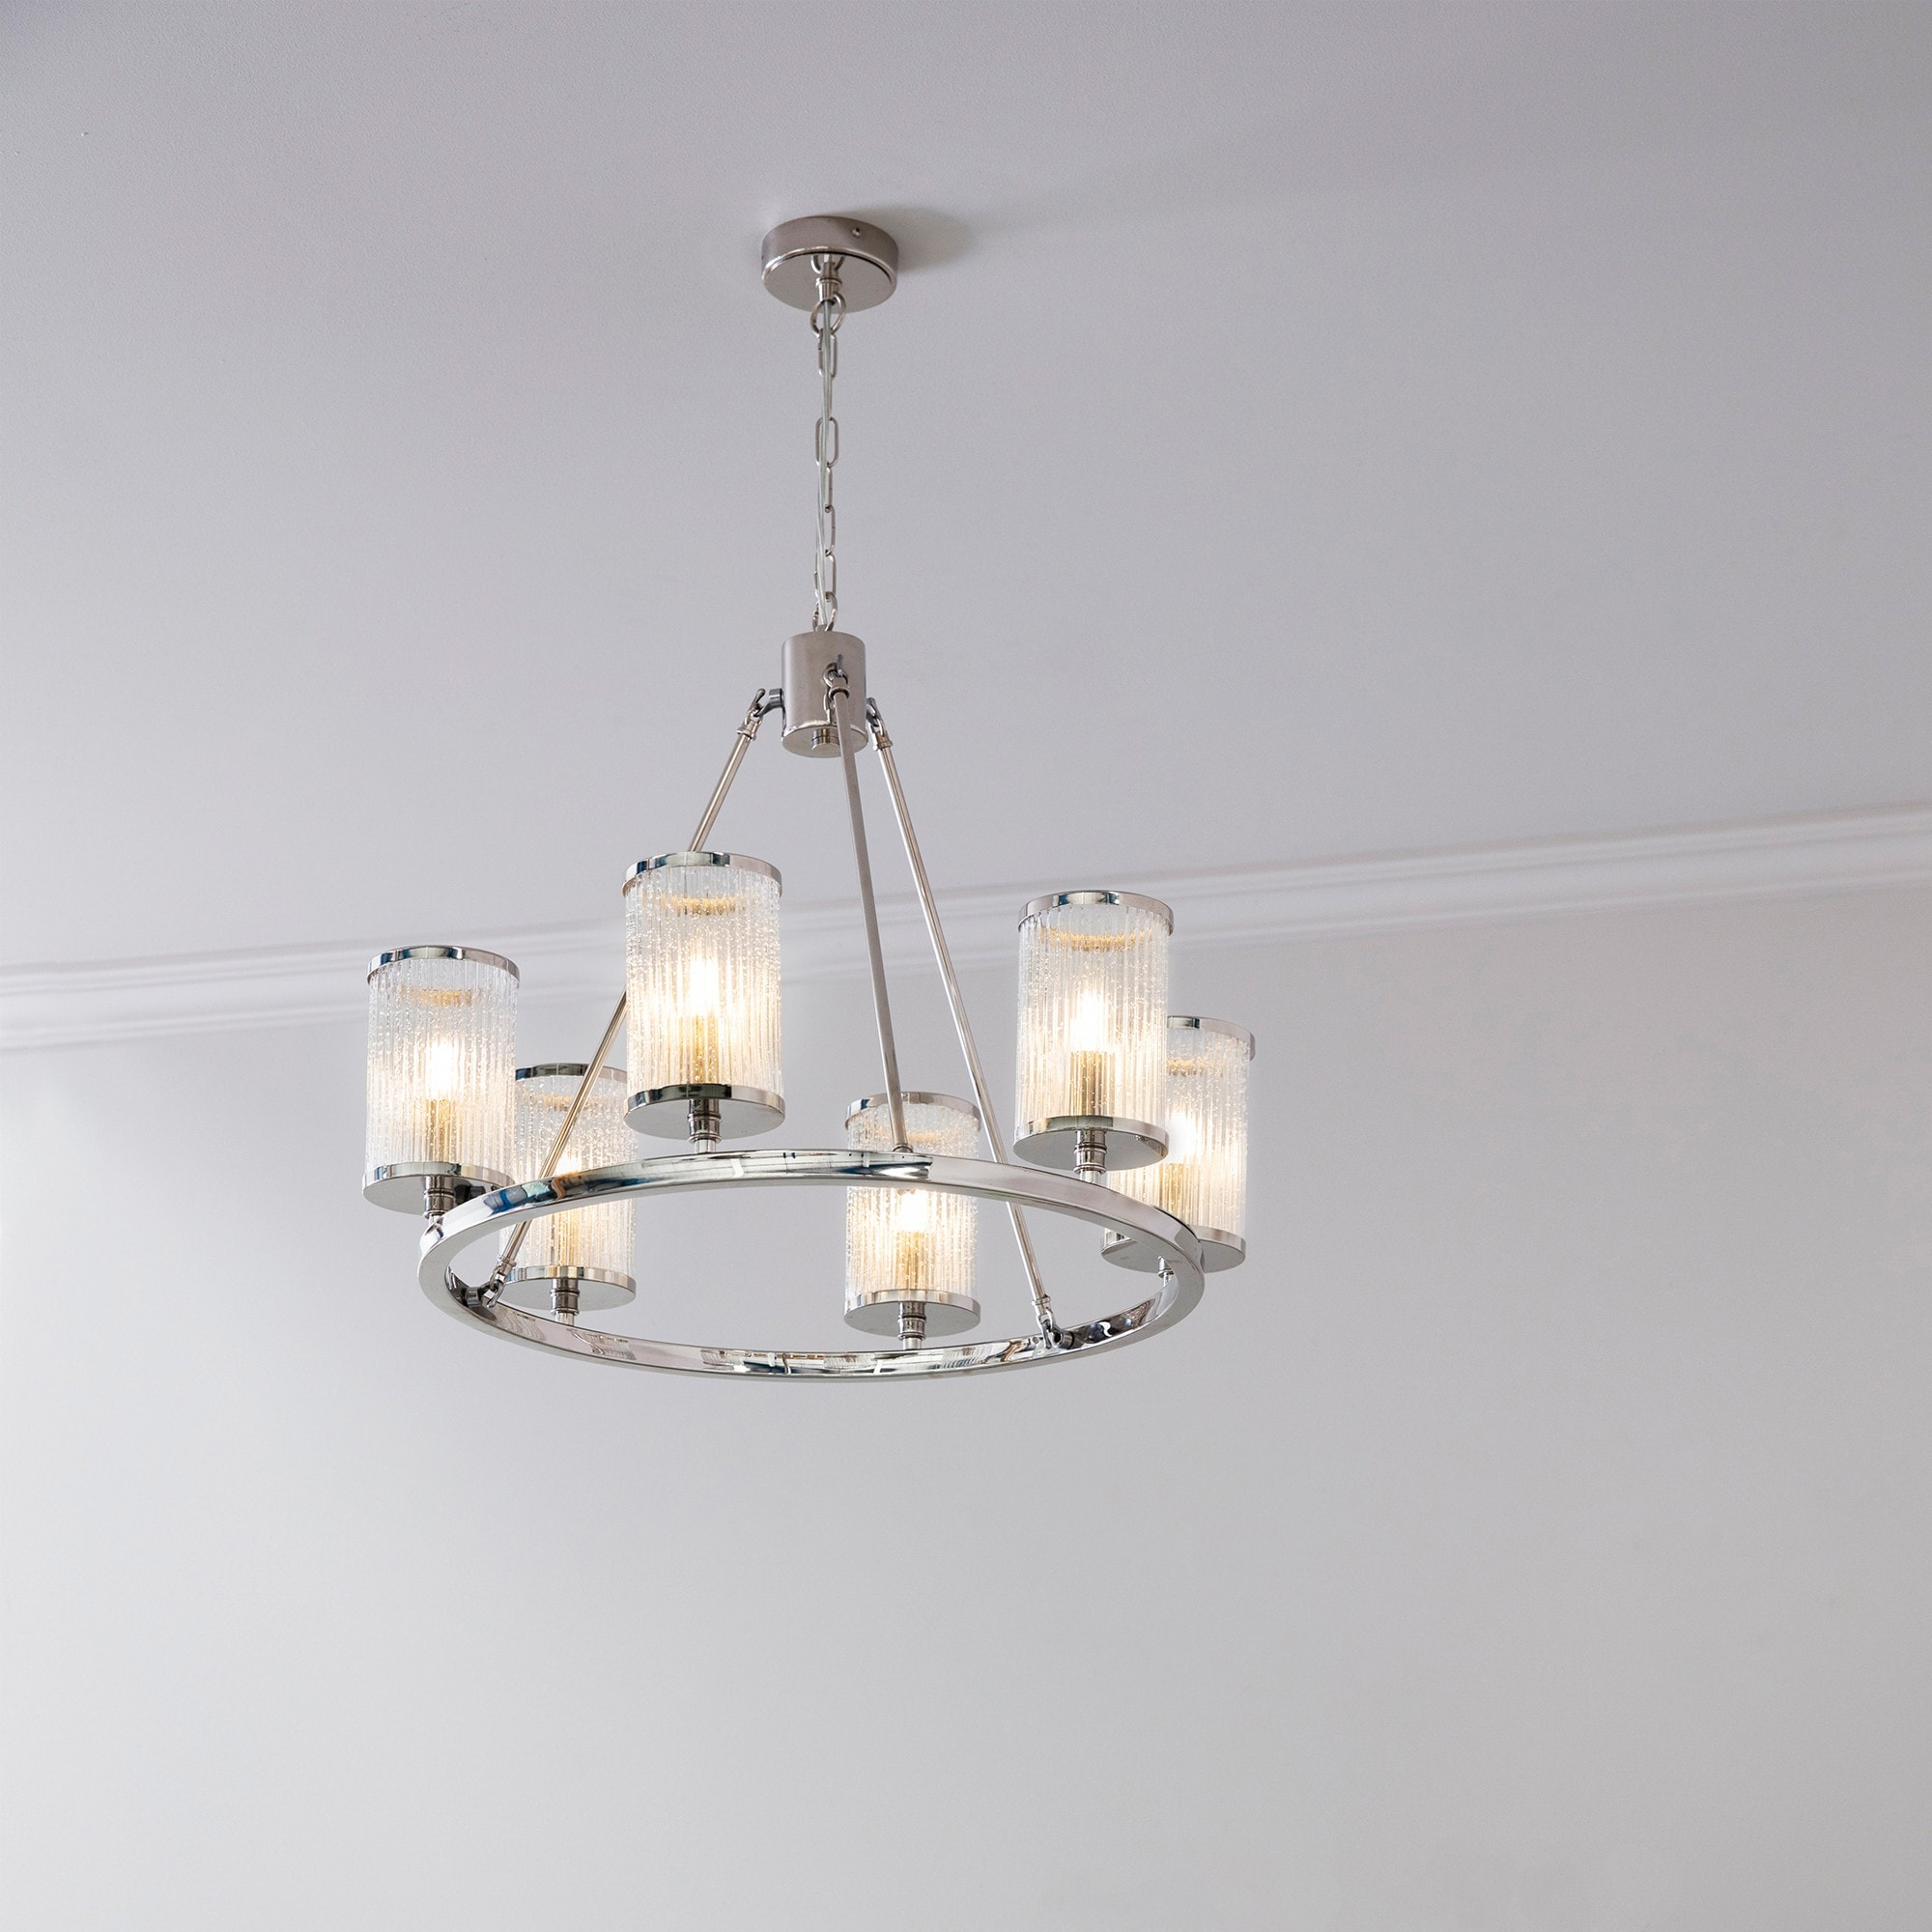 Image of: Easton Chandelier Contemporary Lighting Contemporary Chandeliers